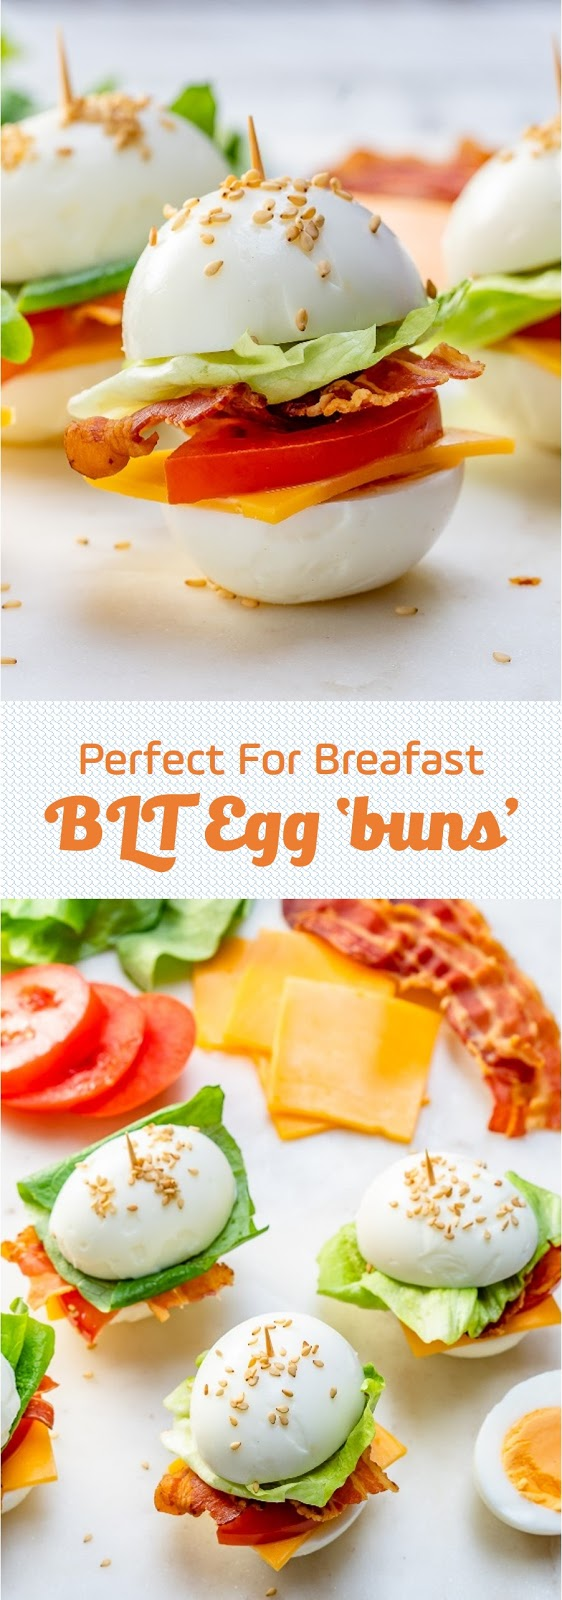 Perfect For Breafast - BLT Egg 'buns'